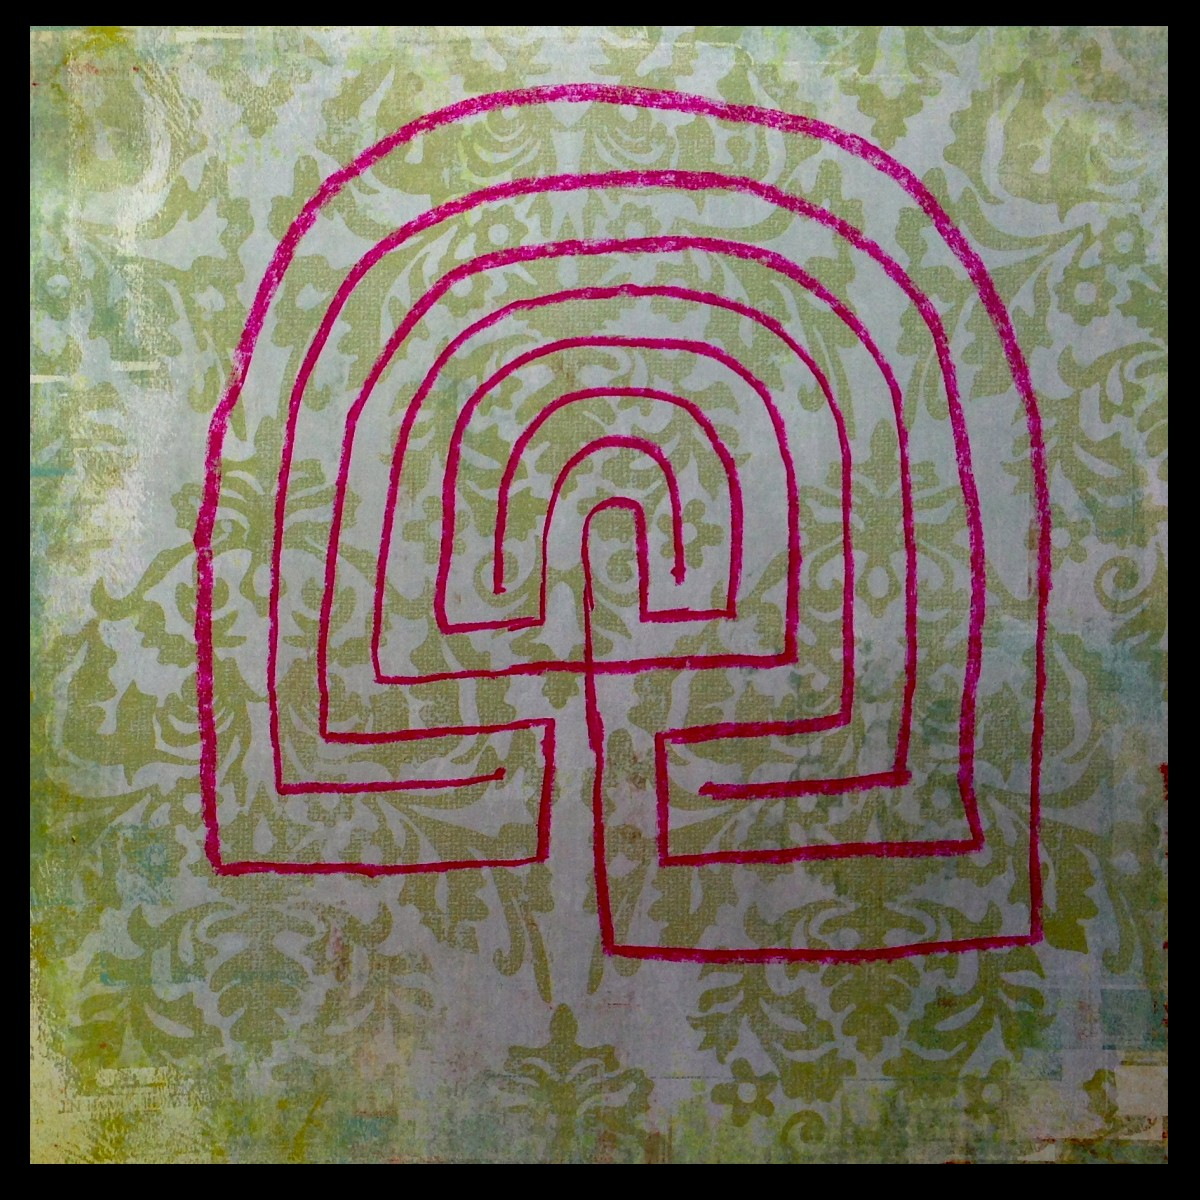 how to draw a labyrinth step by step